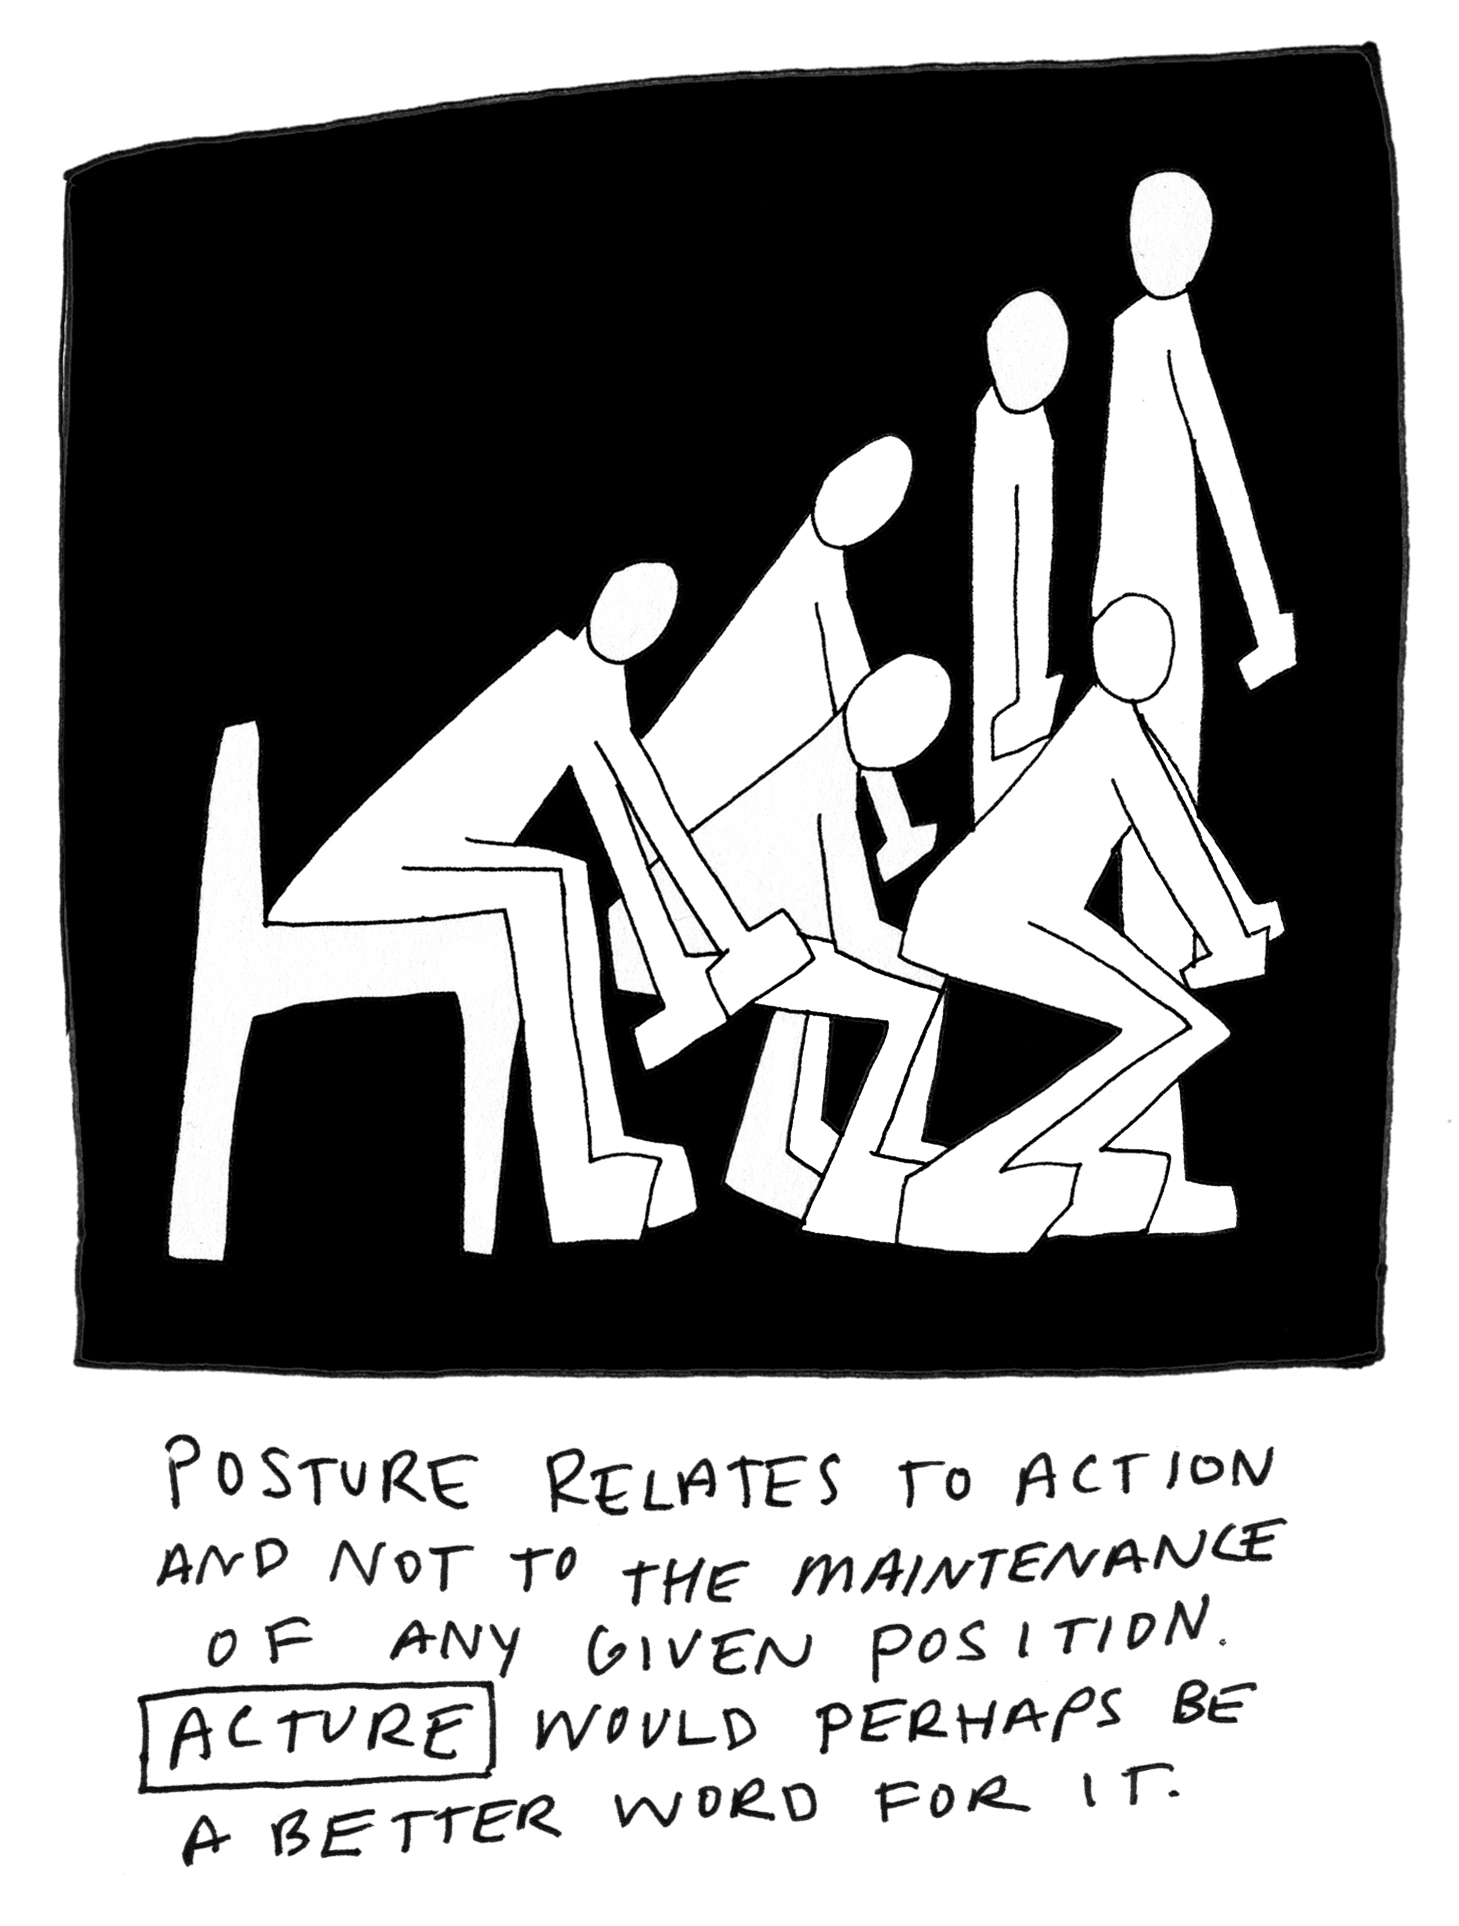 posture relates to action filled 3cNOE.jpg